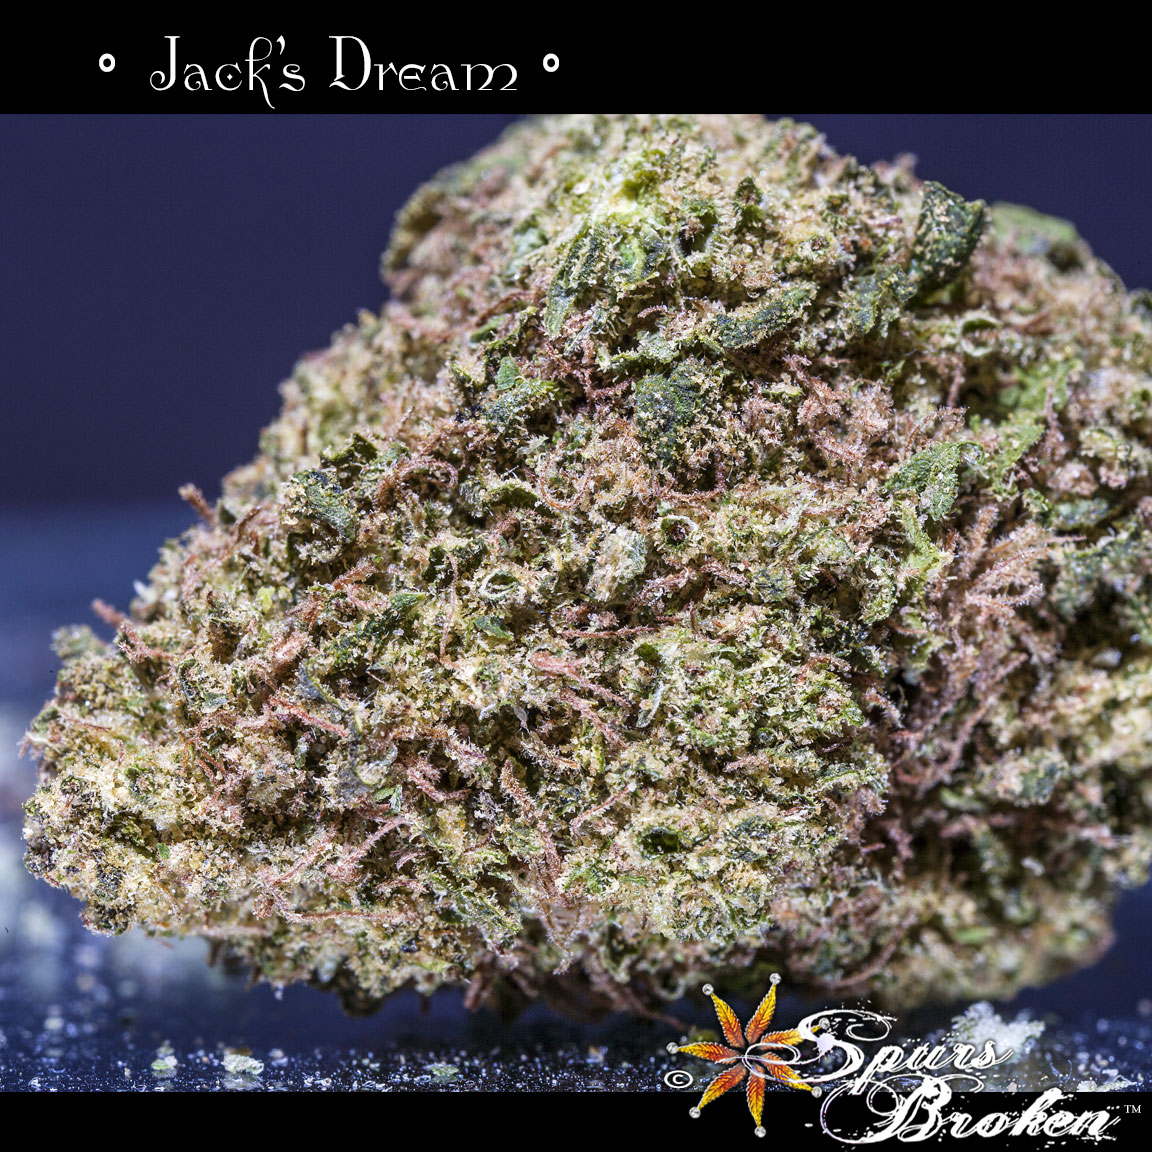 Jack's Dream - Cannabis Macro Photography by Spurs Broken (Robert R. Sanders)